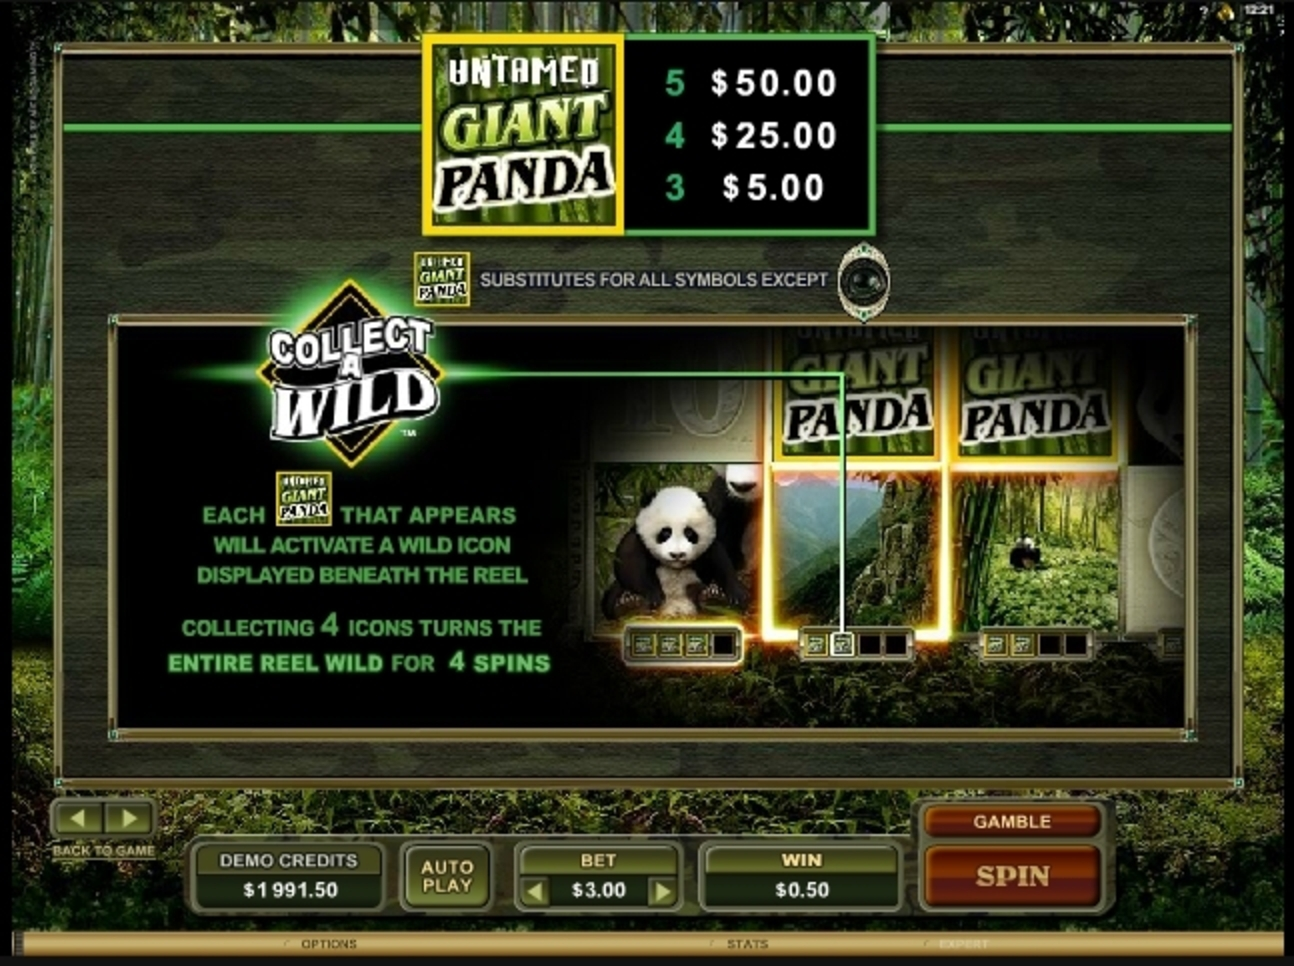 Info of Untamed Giant Panda Slot Game by Microgaming